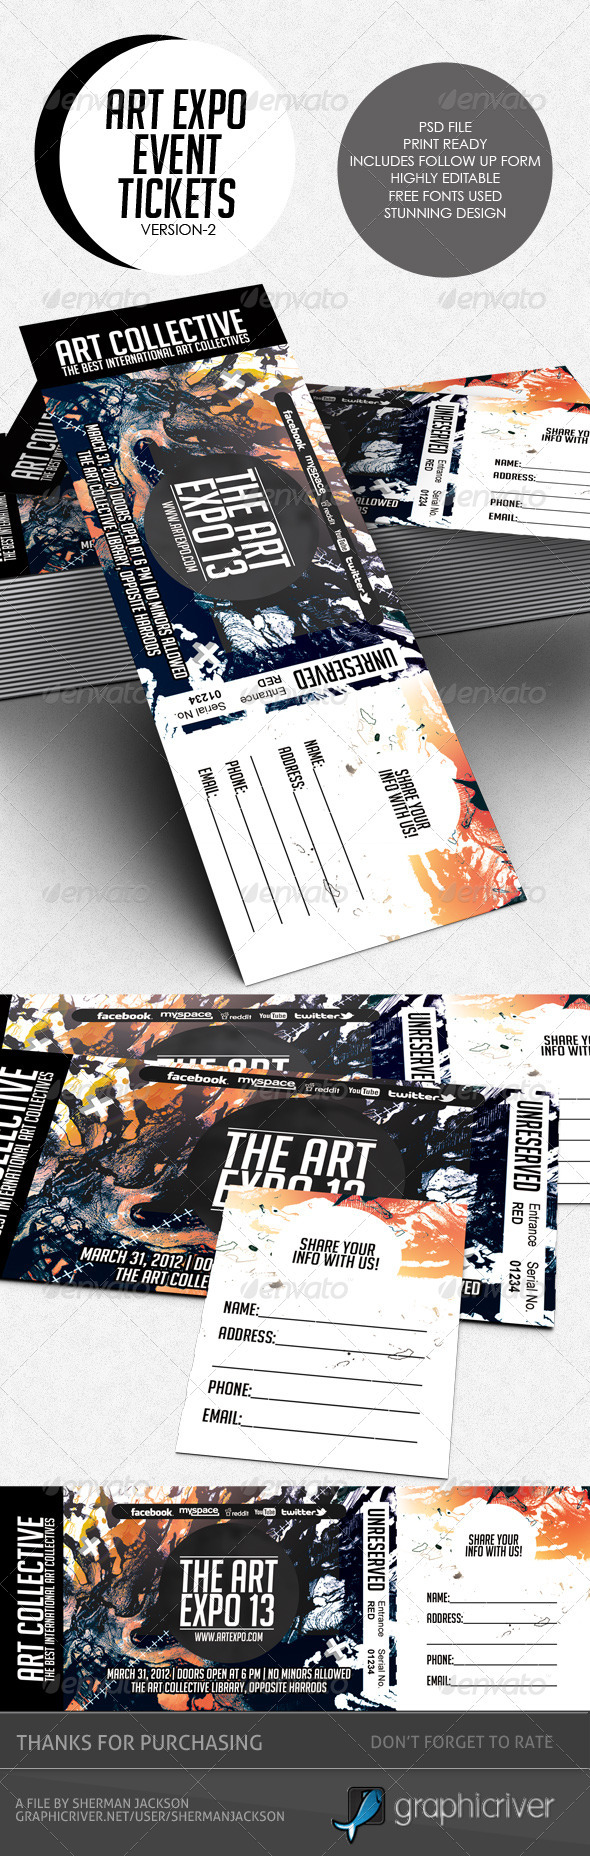 GraphicRiver Art Expo Art Show Event Tickets & Passes V.2 3844208